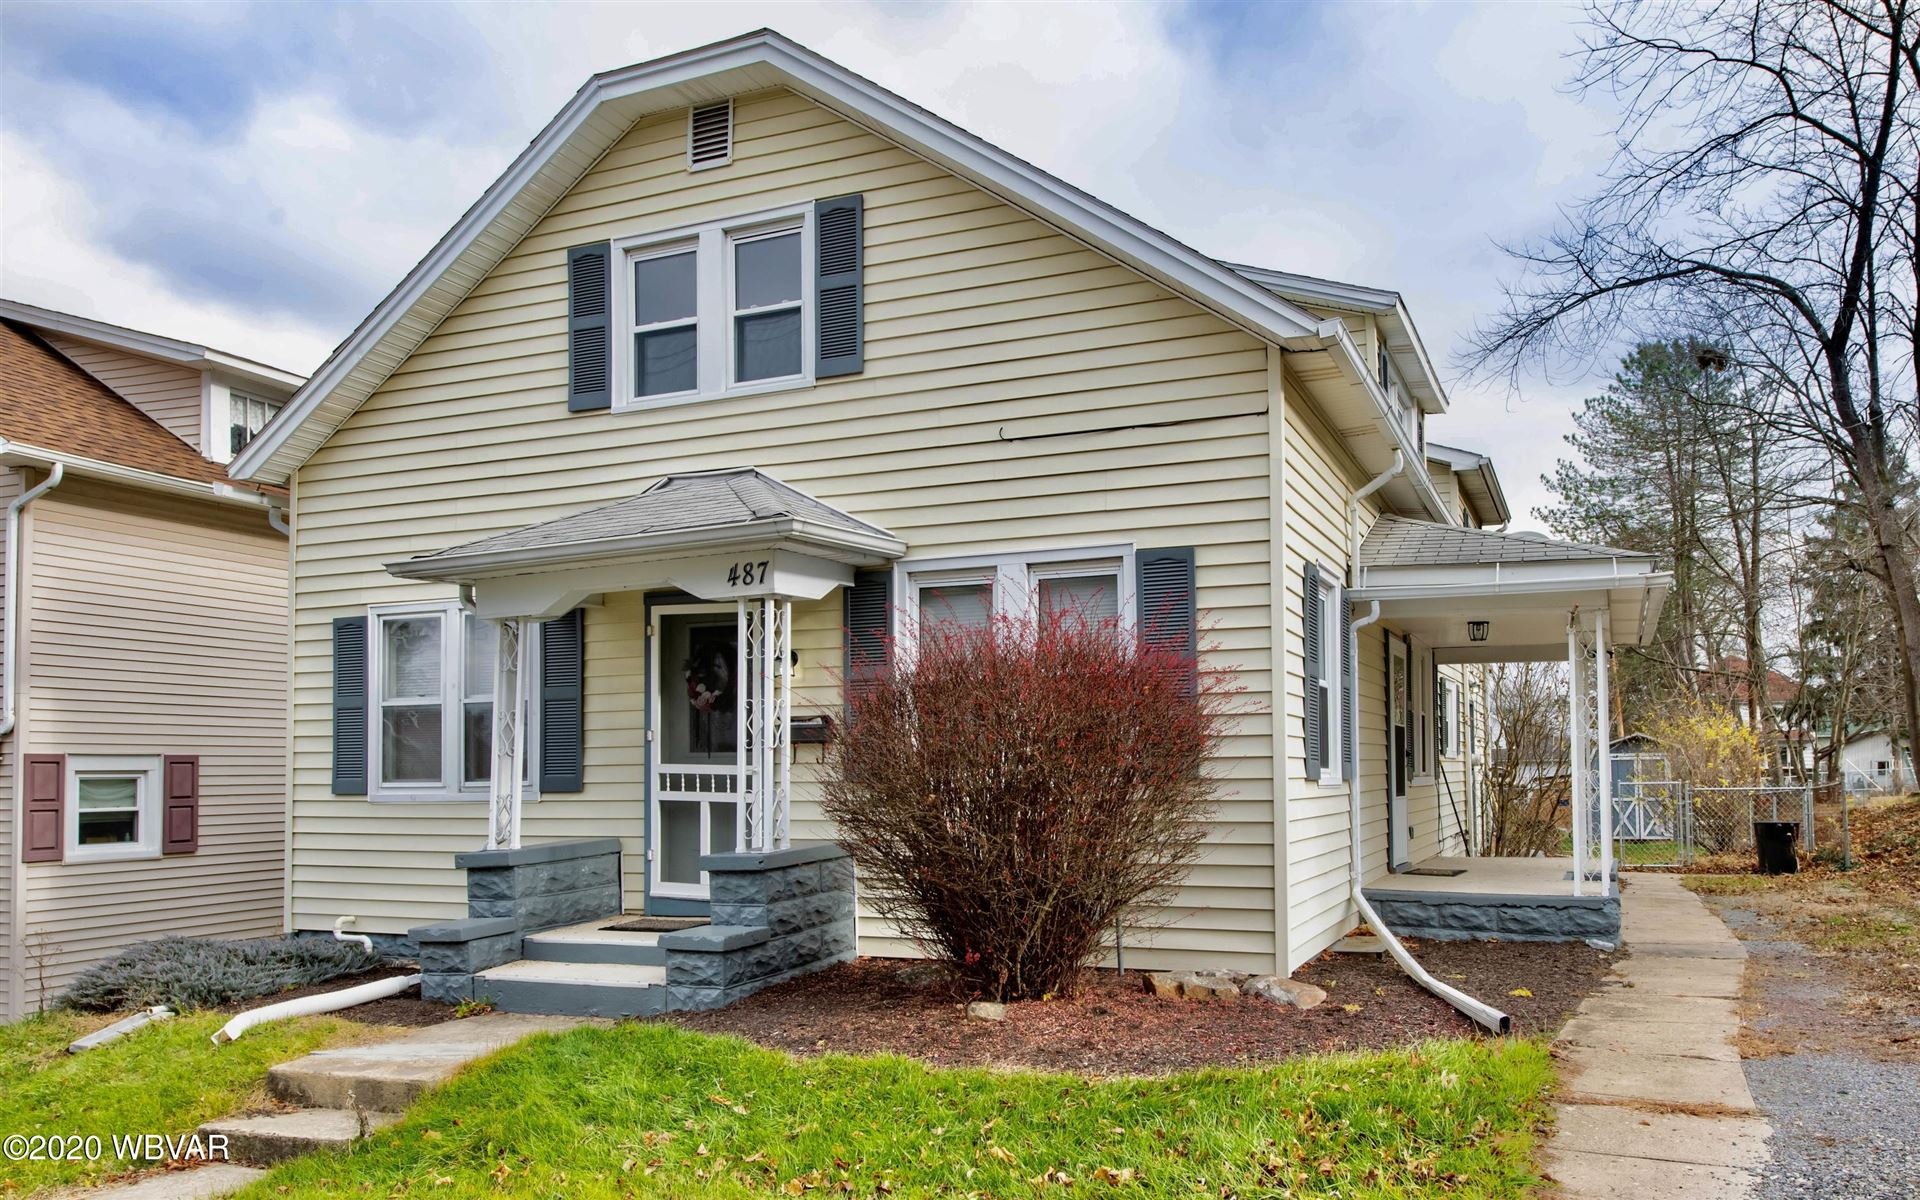 487 WINTHROP STREET, South Williamsport, PA 17702 - #: WB-91649